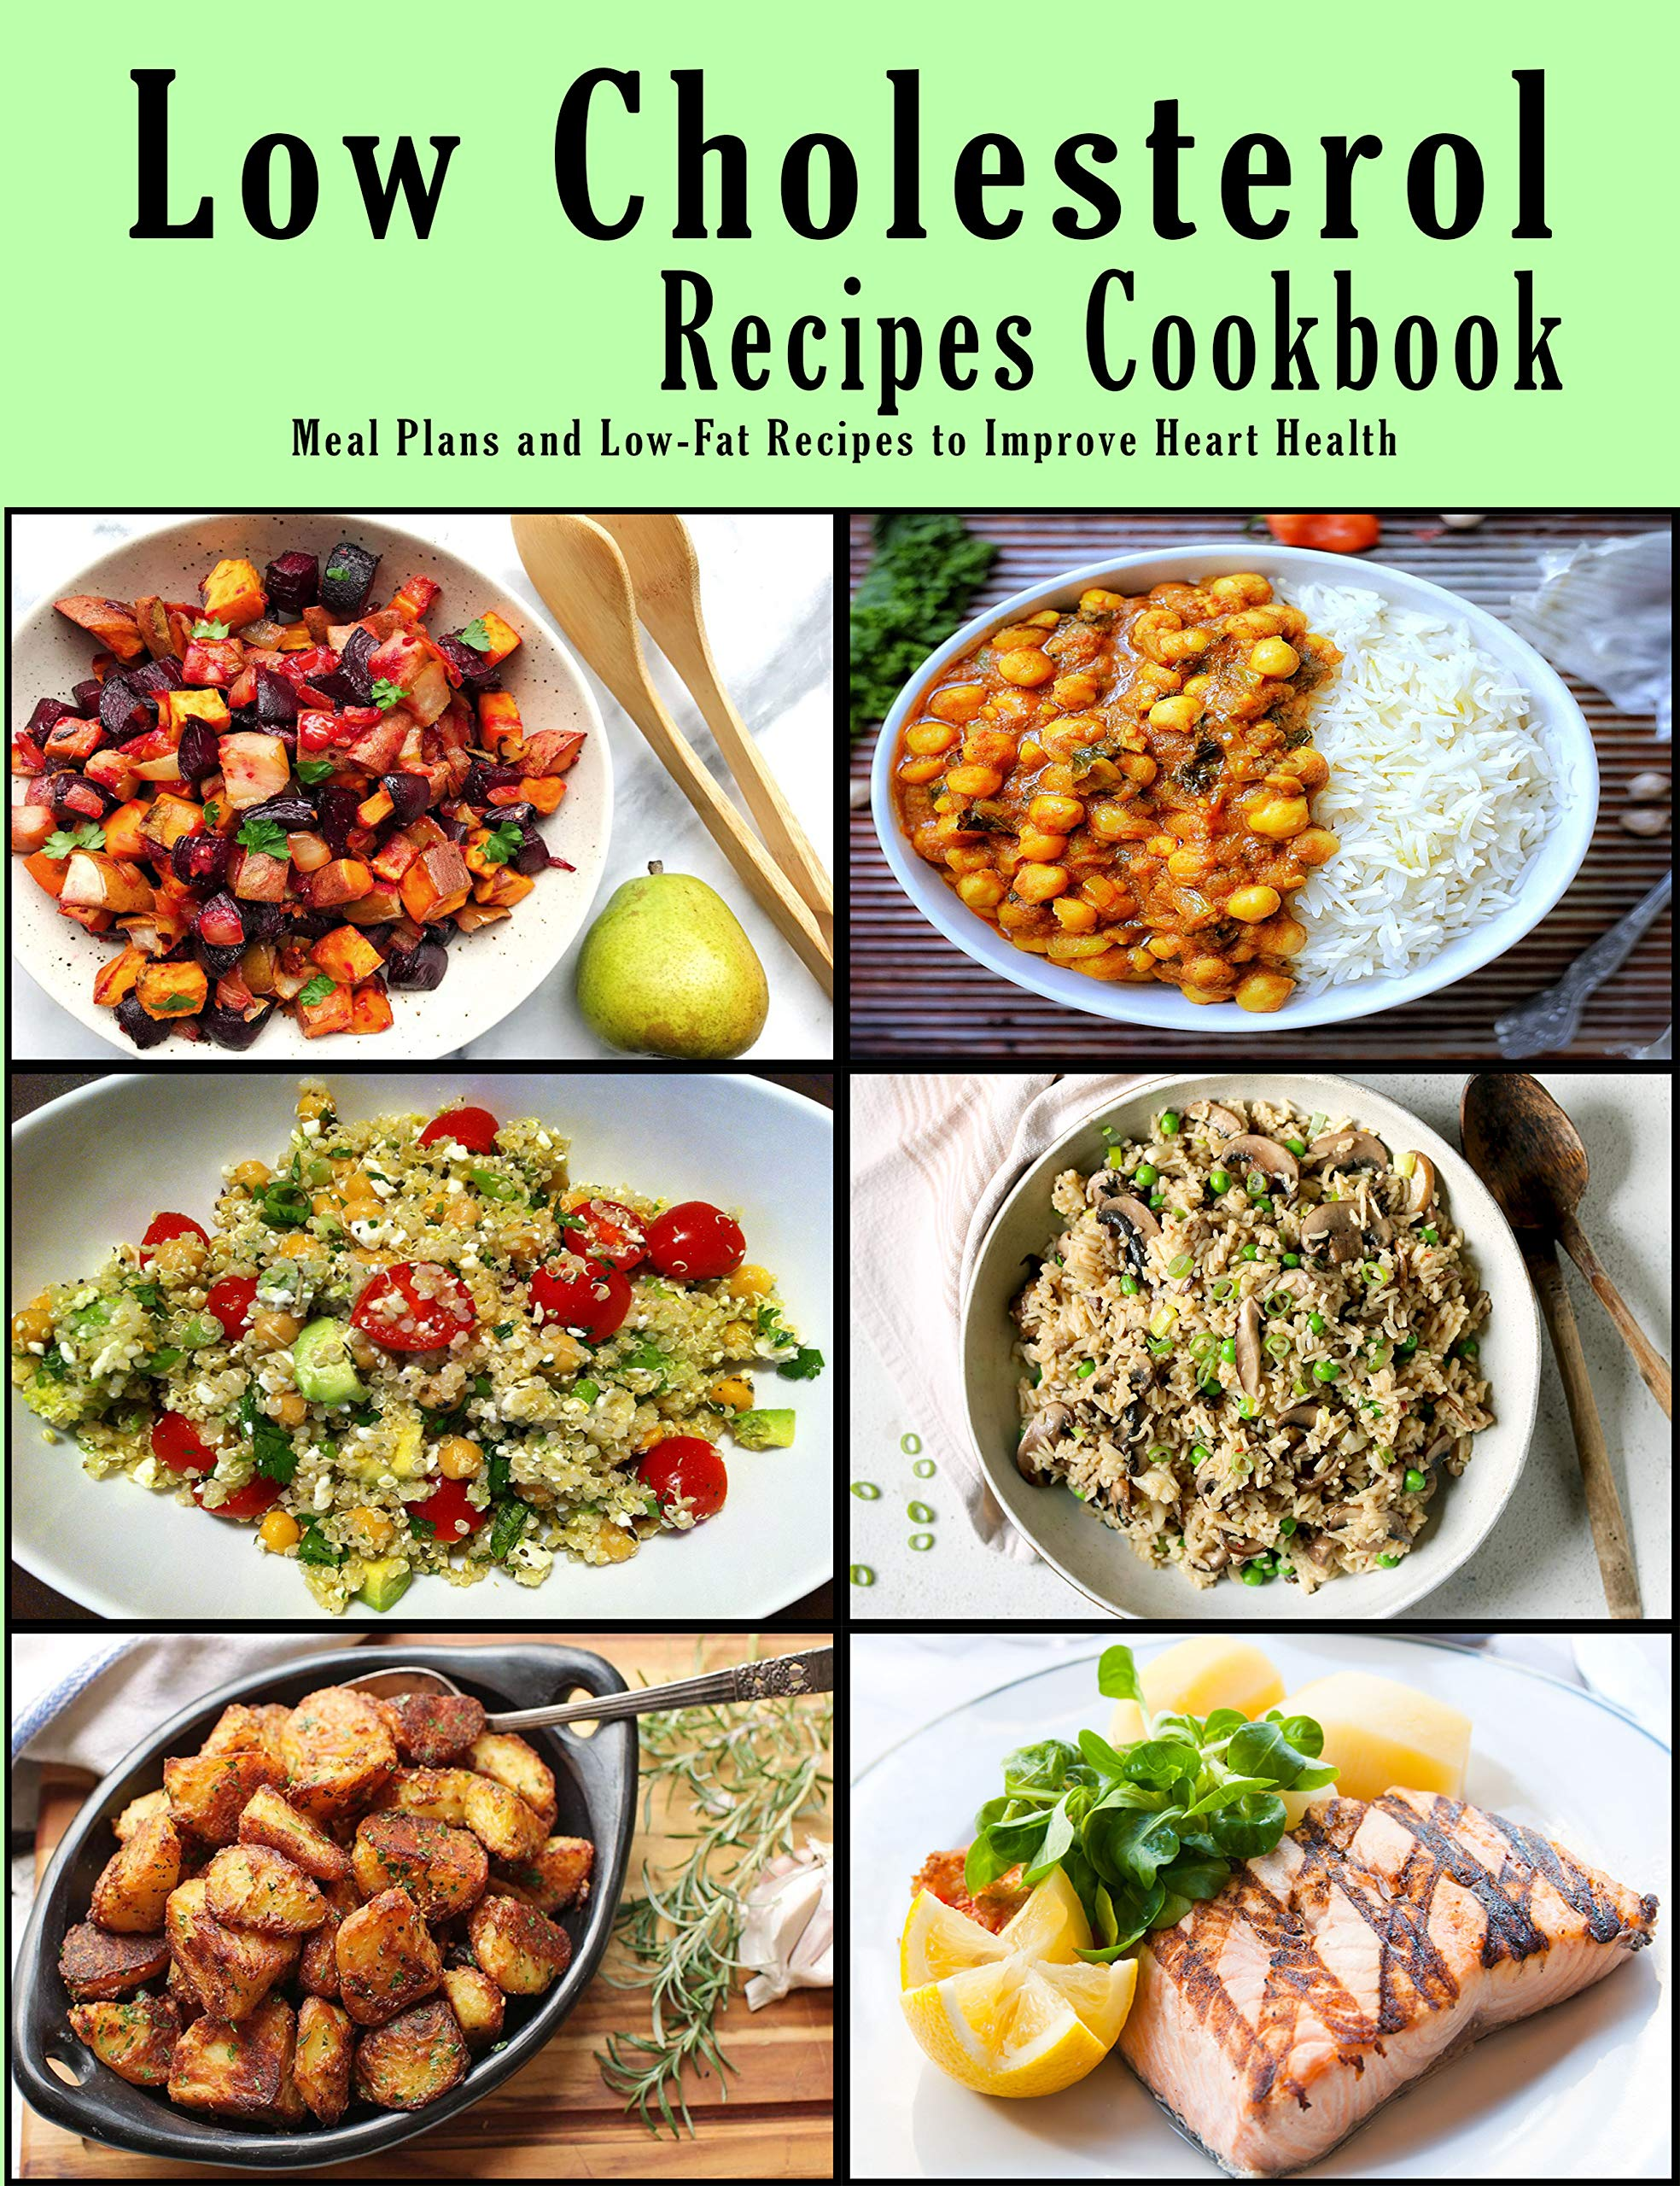 Low Cholesterol Recipes Cookbook: Meal Plans and Low-Fat Recipes to Improve Heart Health